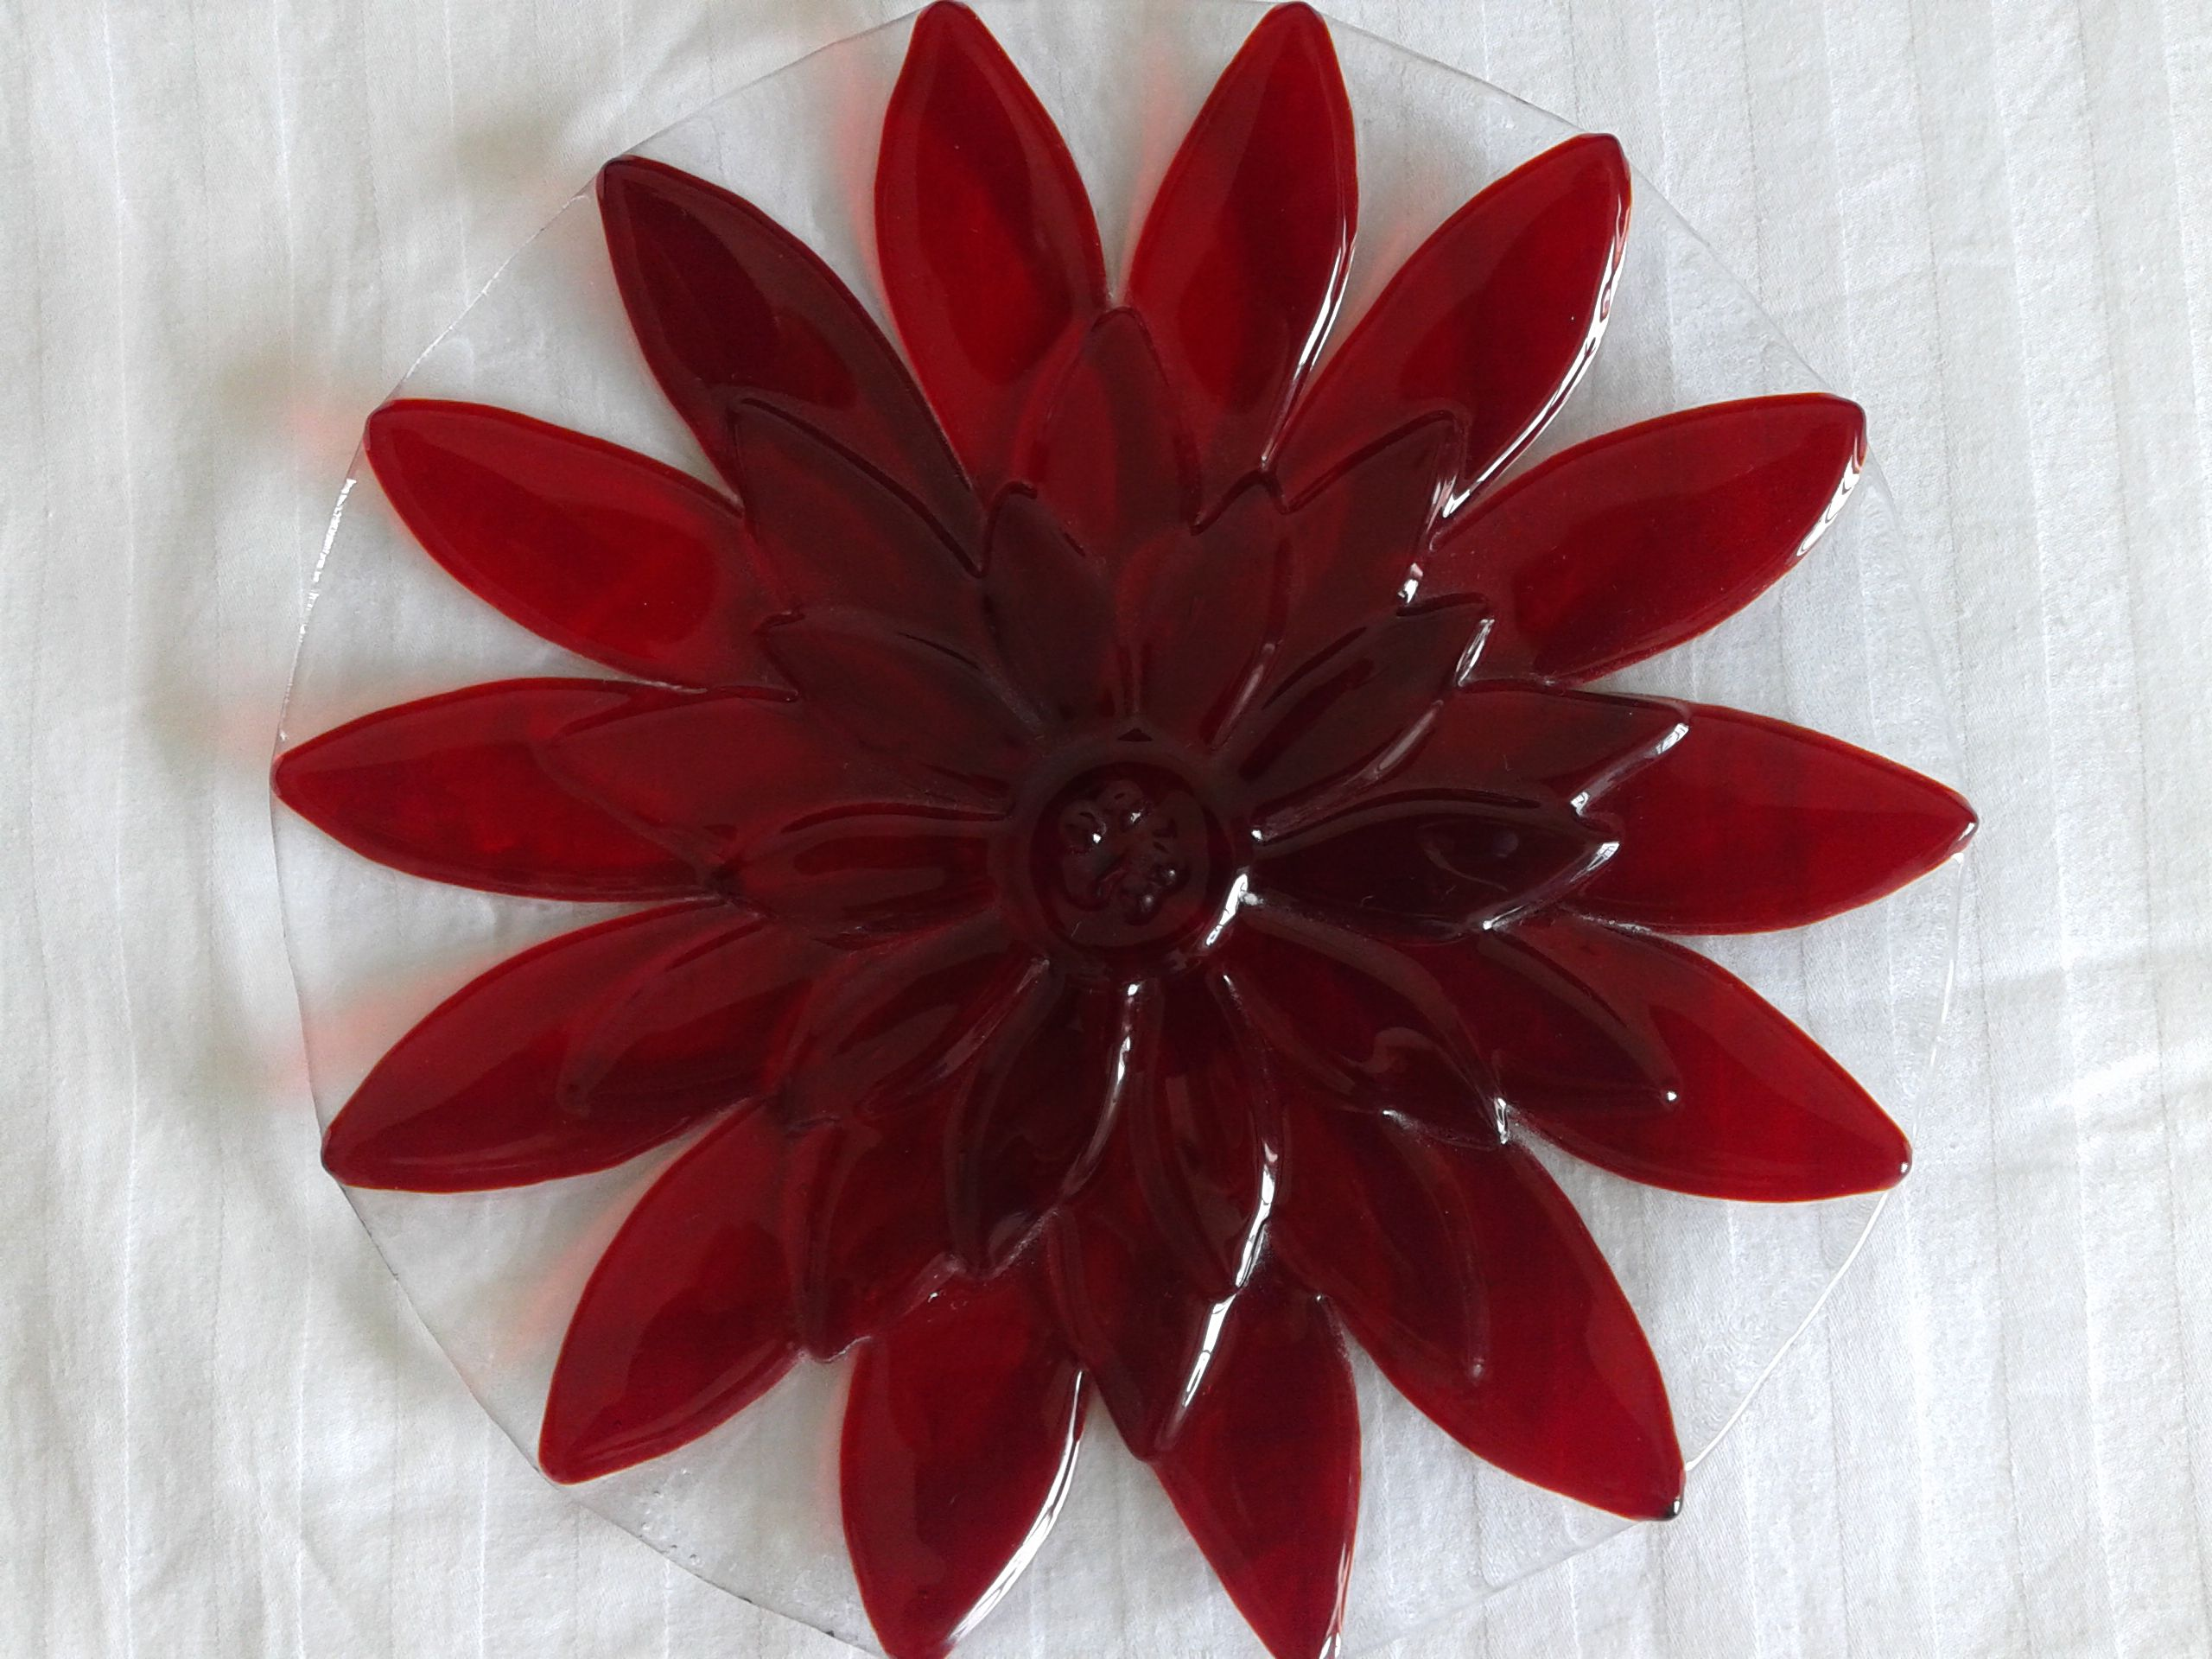 glass interior home plate kitchen red